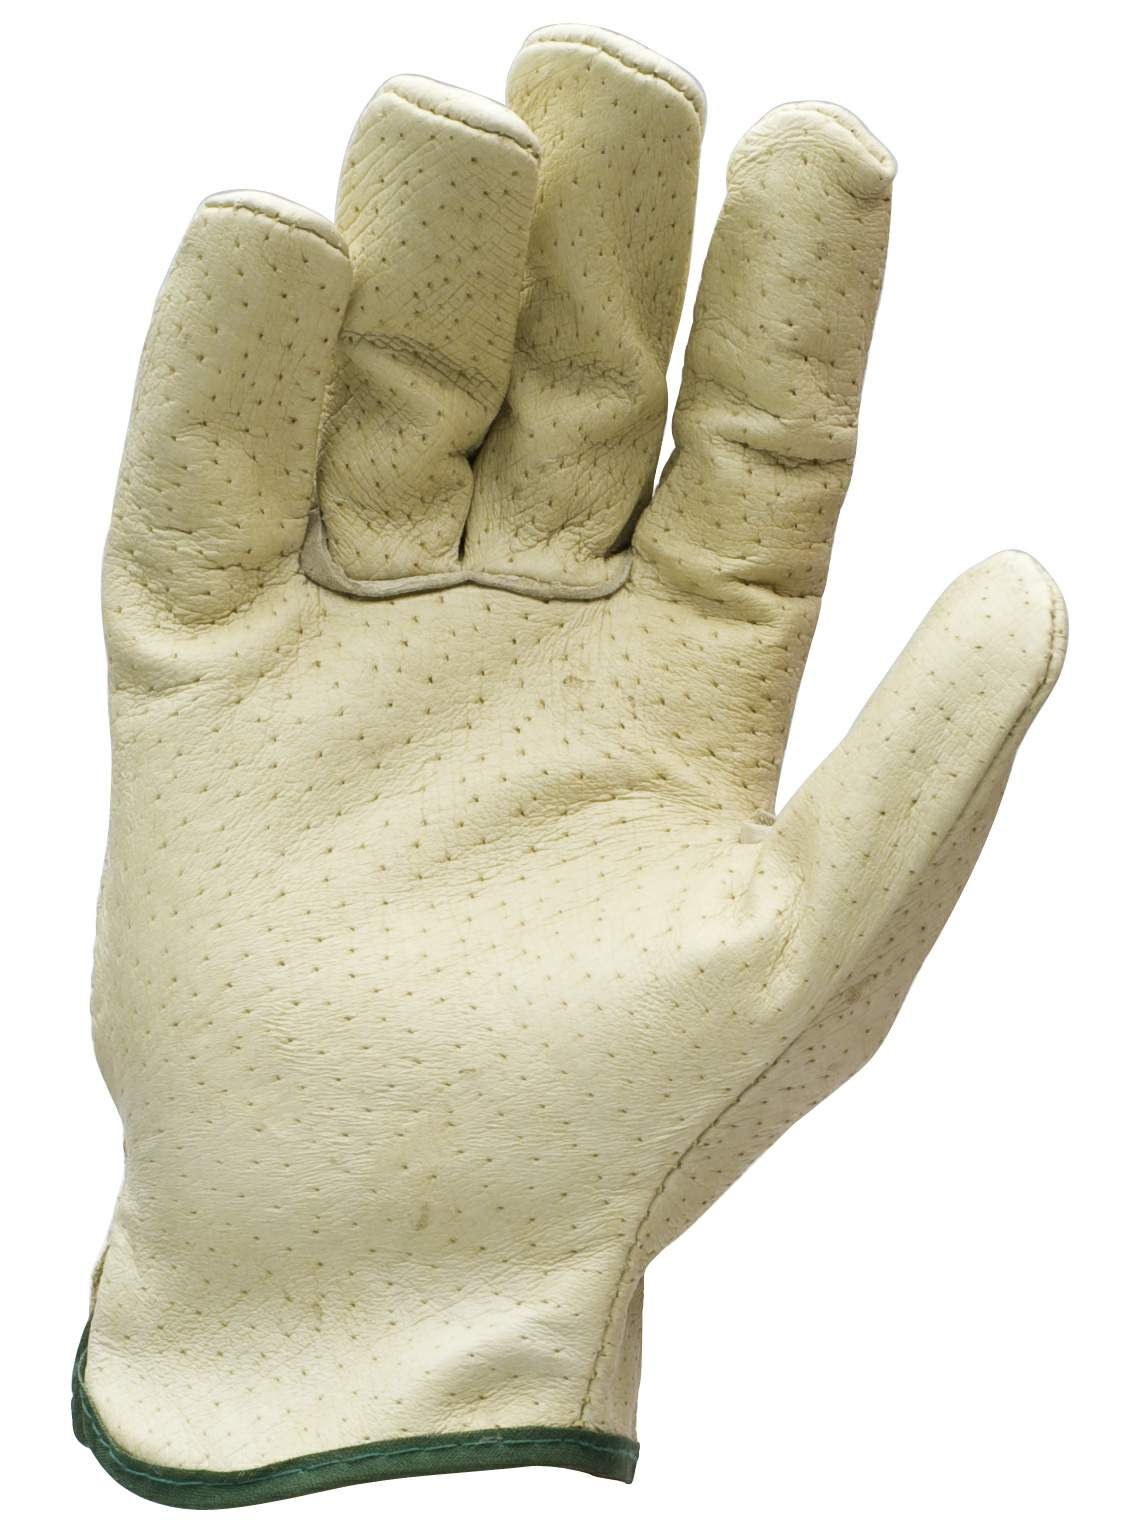 Thumbnail - Leather Riggers Gloves Medium